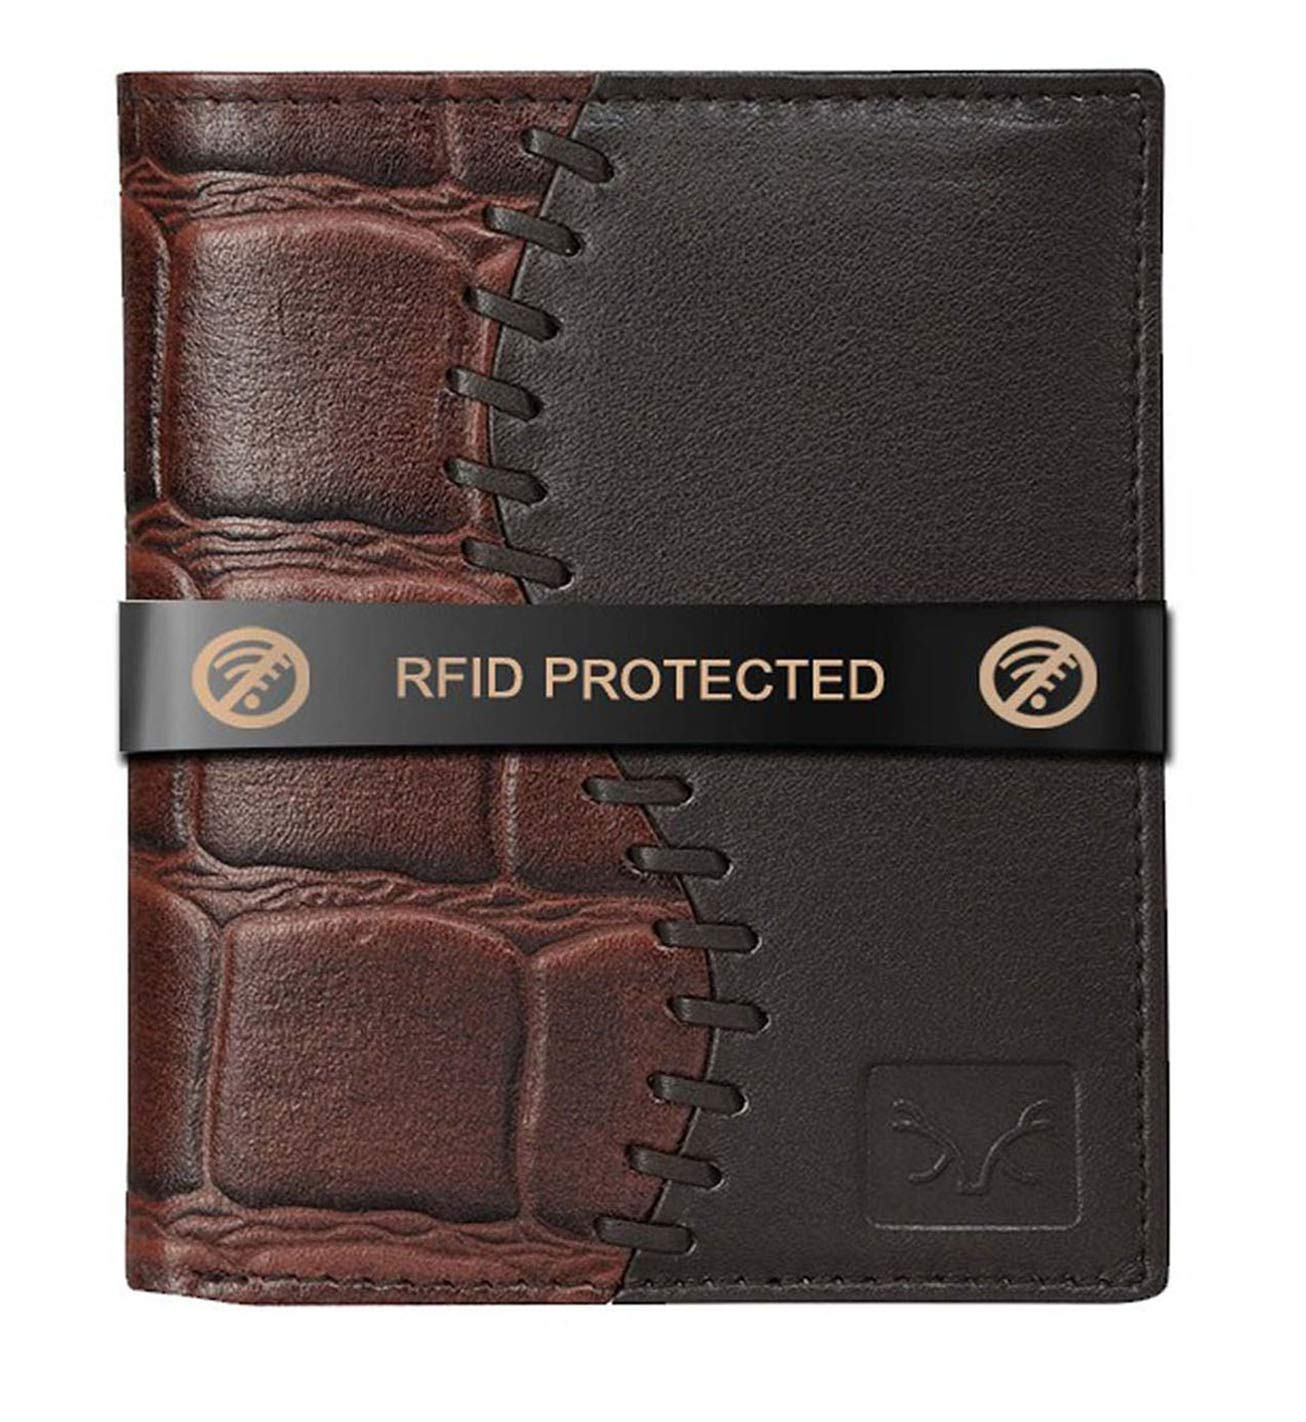 AL FASCINO Stylish RFID Protected Genuine Leather Wallet for Men